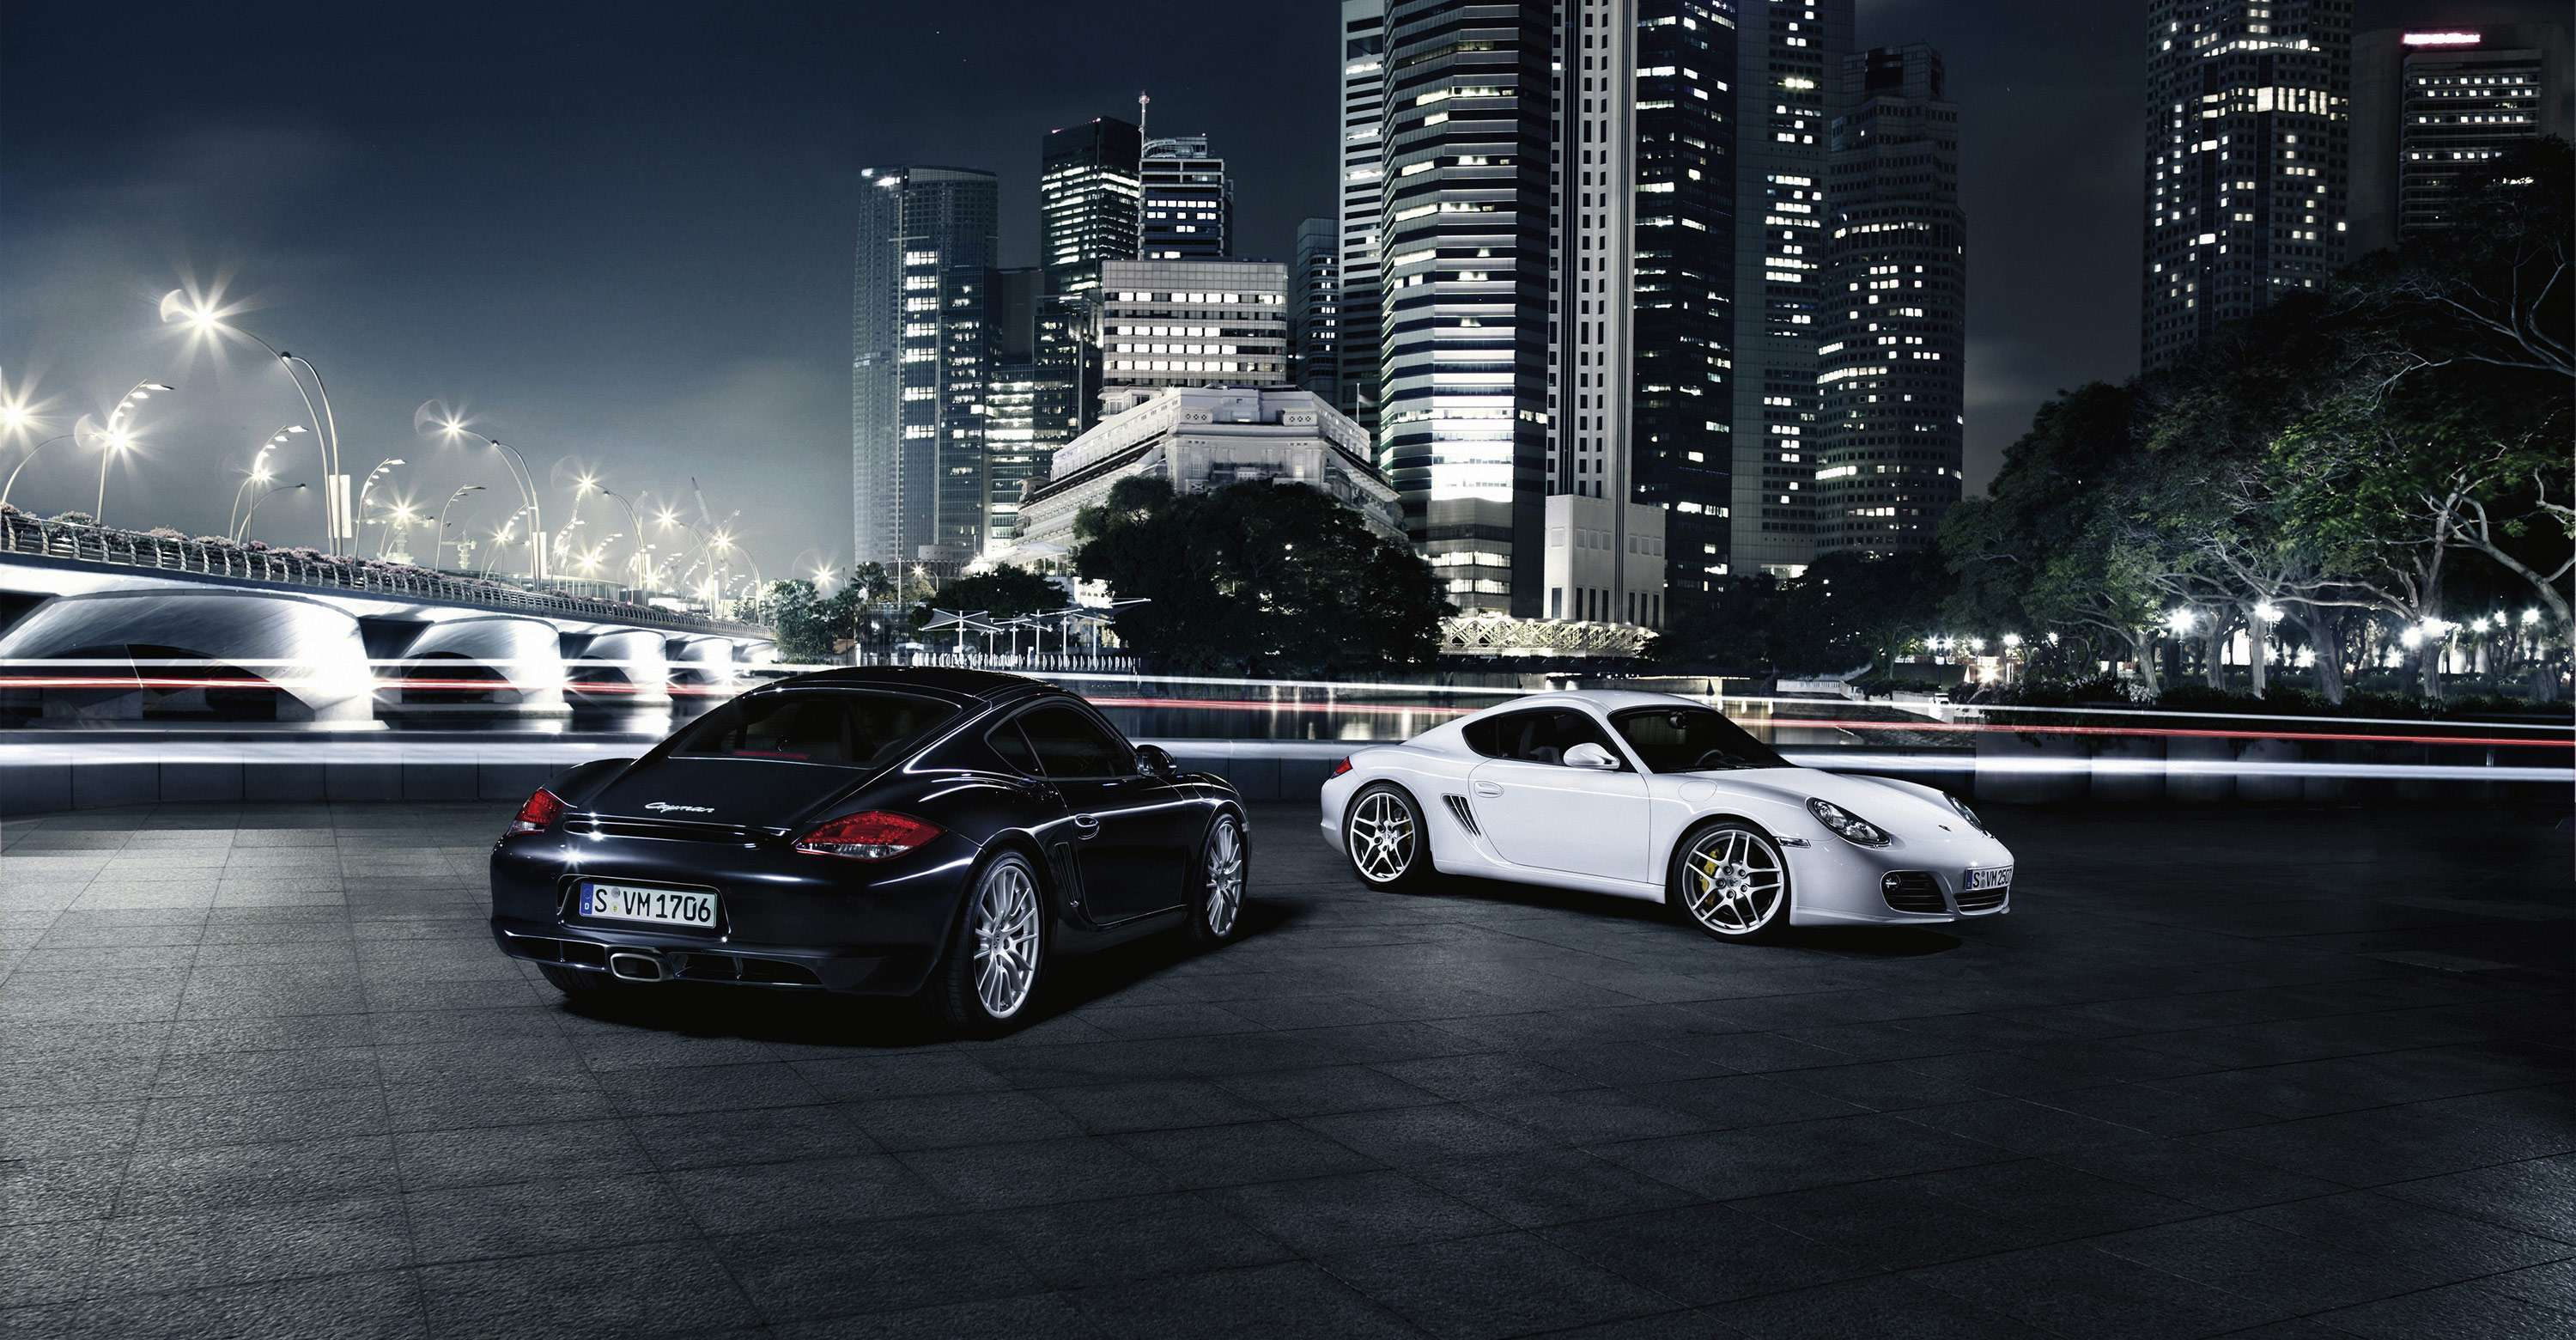 Background Car Hd Wallpapers Cities: Porsche Cayman 9 Hd Wallpapers : Hd Car Wallpapers